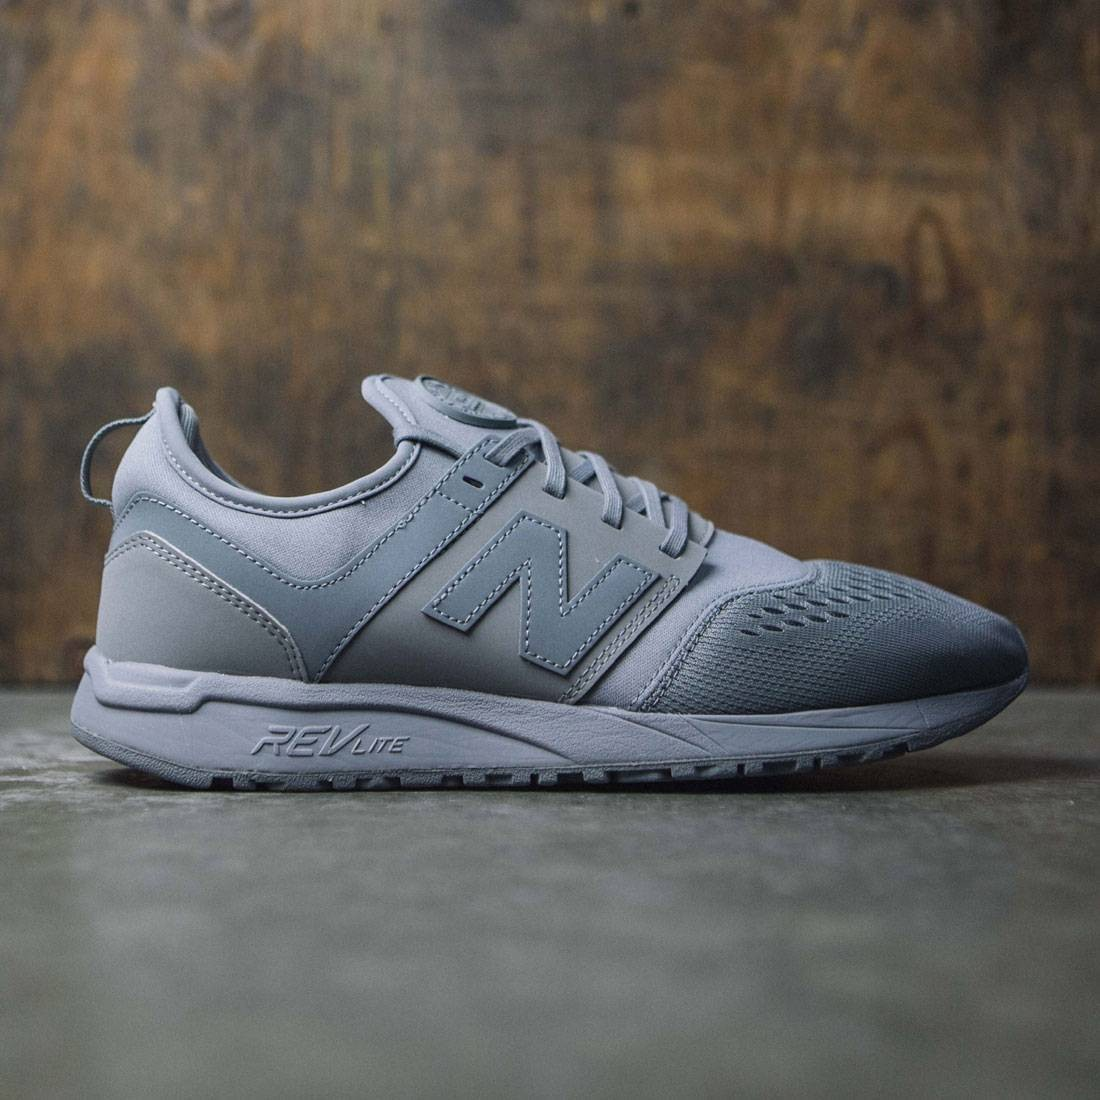 2new balance 247 sport sneakers